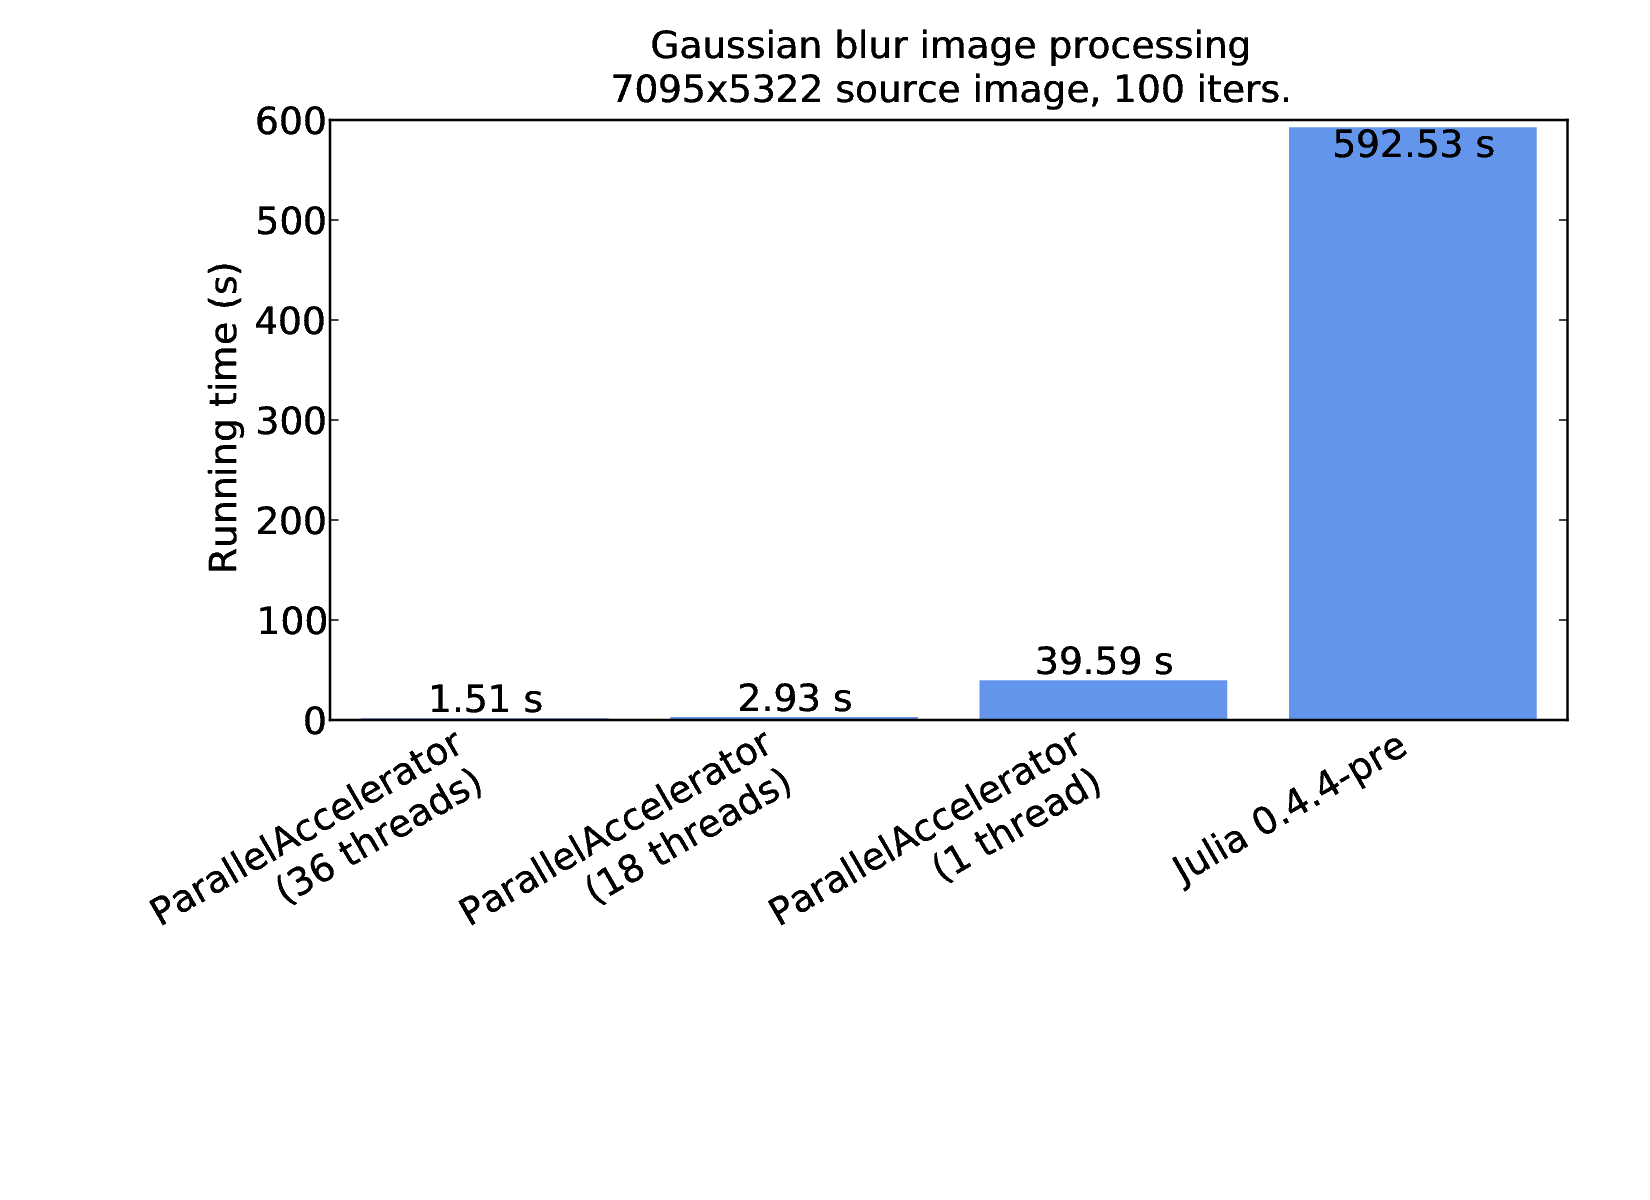 Benchmark results for plain Julia and ParallelAccelerator implementations of Gaussian blur